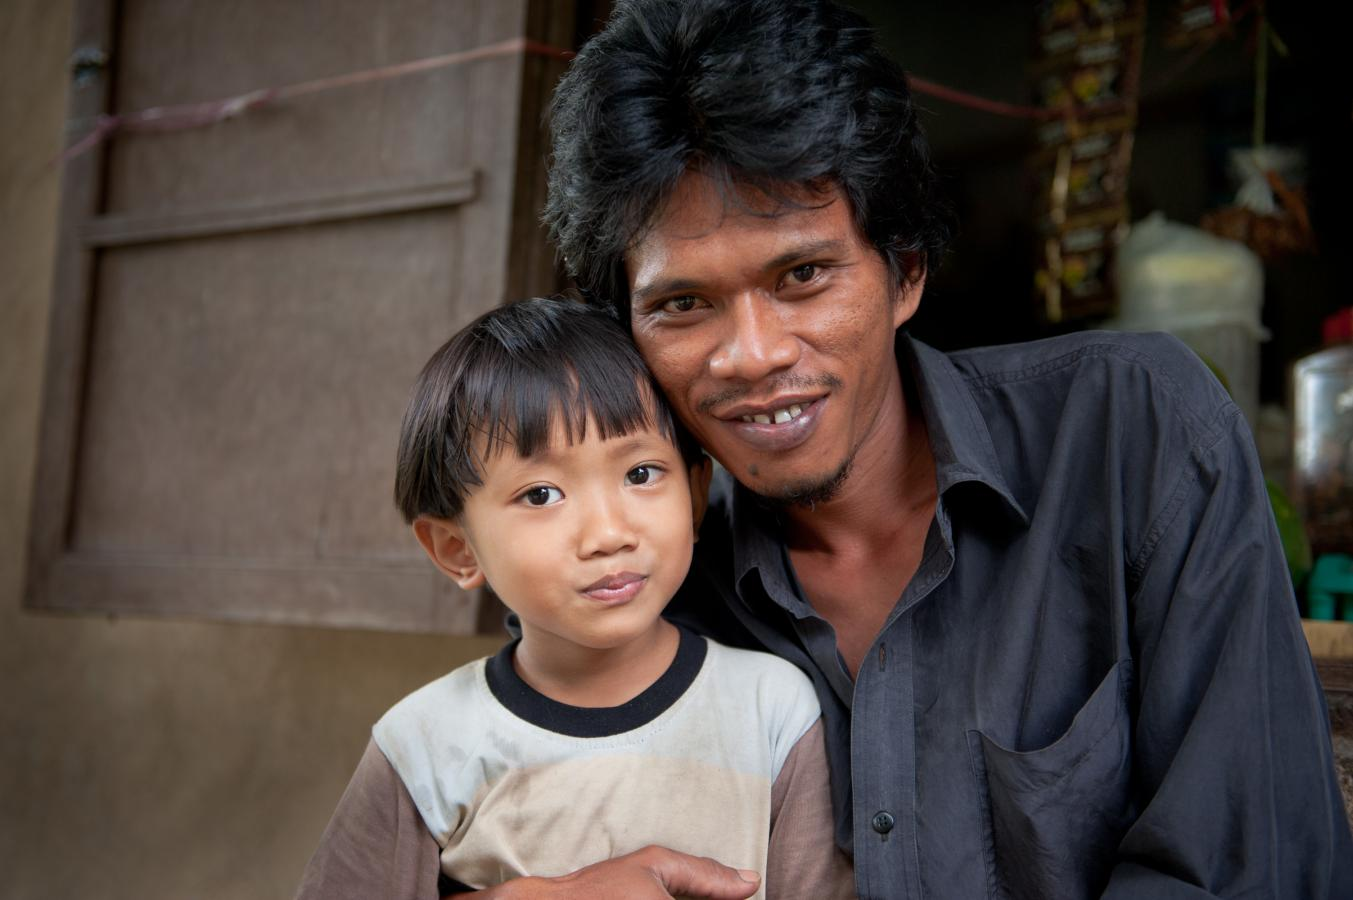 father-and-son-somewhere-around-sidemen-bali-2010